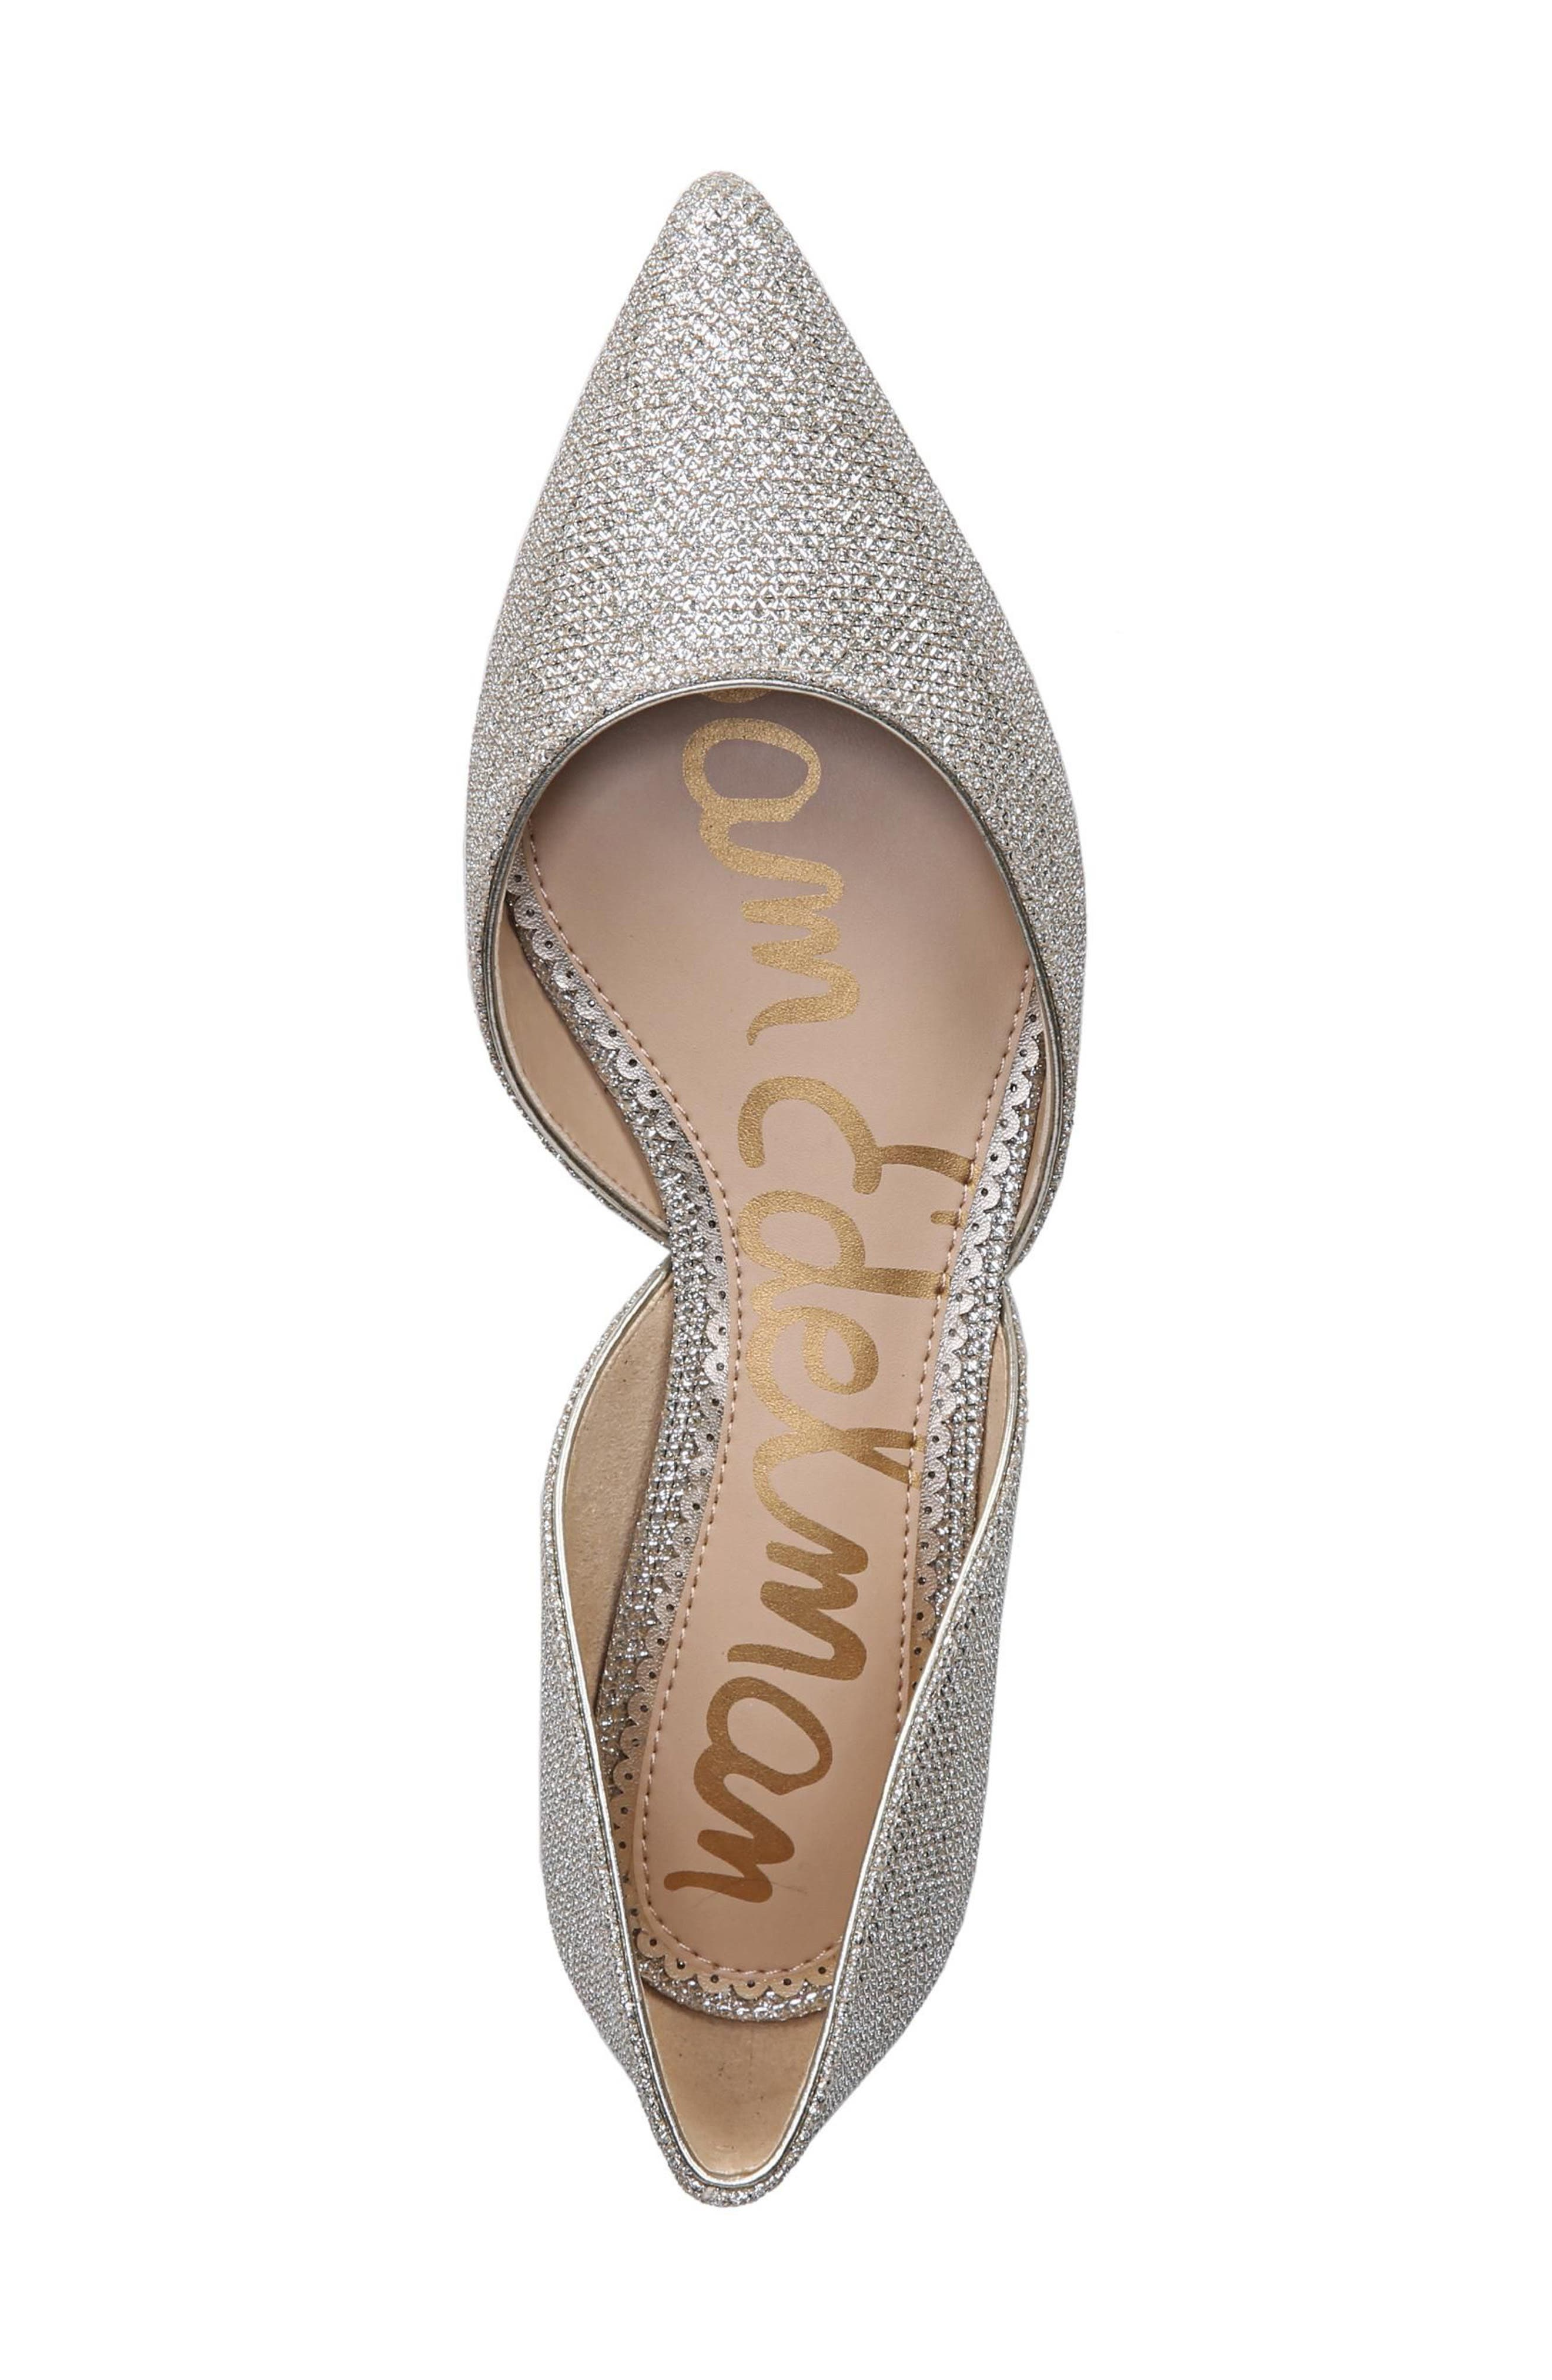 Rodney Pointy Toe d'Orsay Flat,                             Alternate thumbnail 5, color,                             JUTE GLAM FABRIC